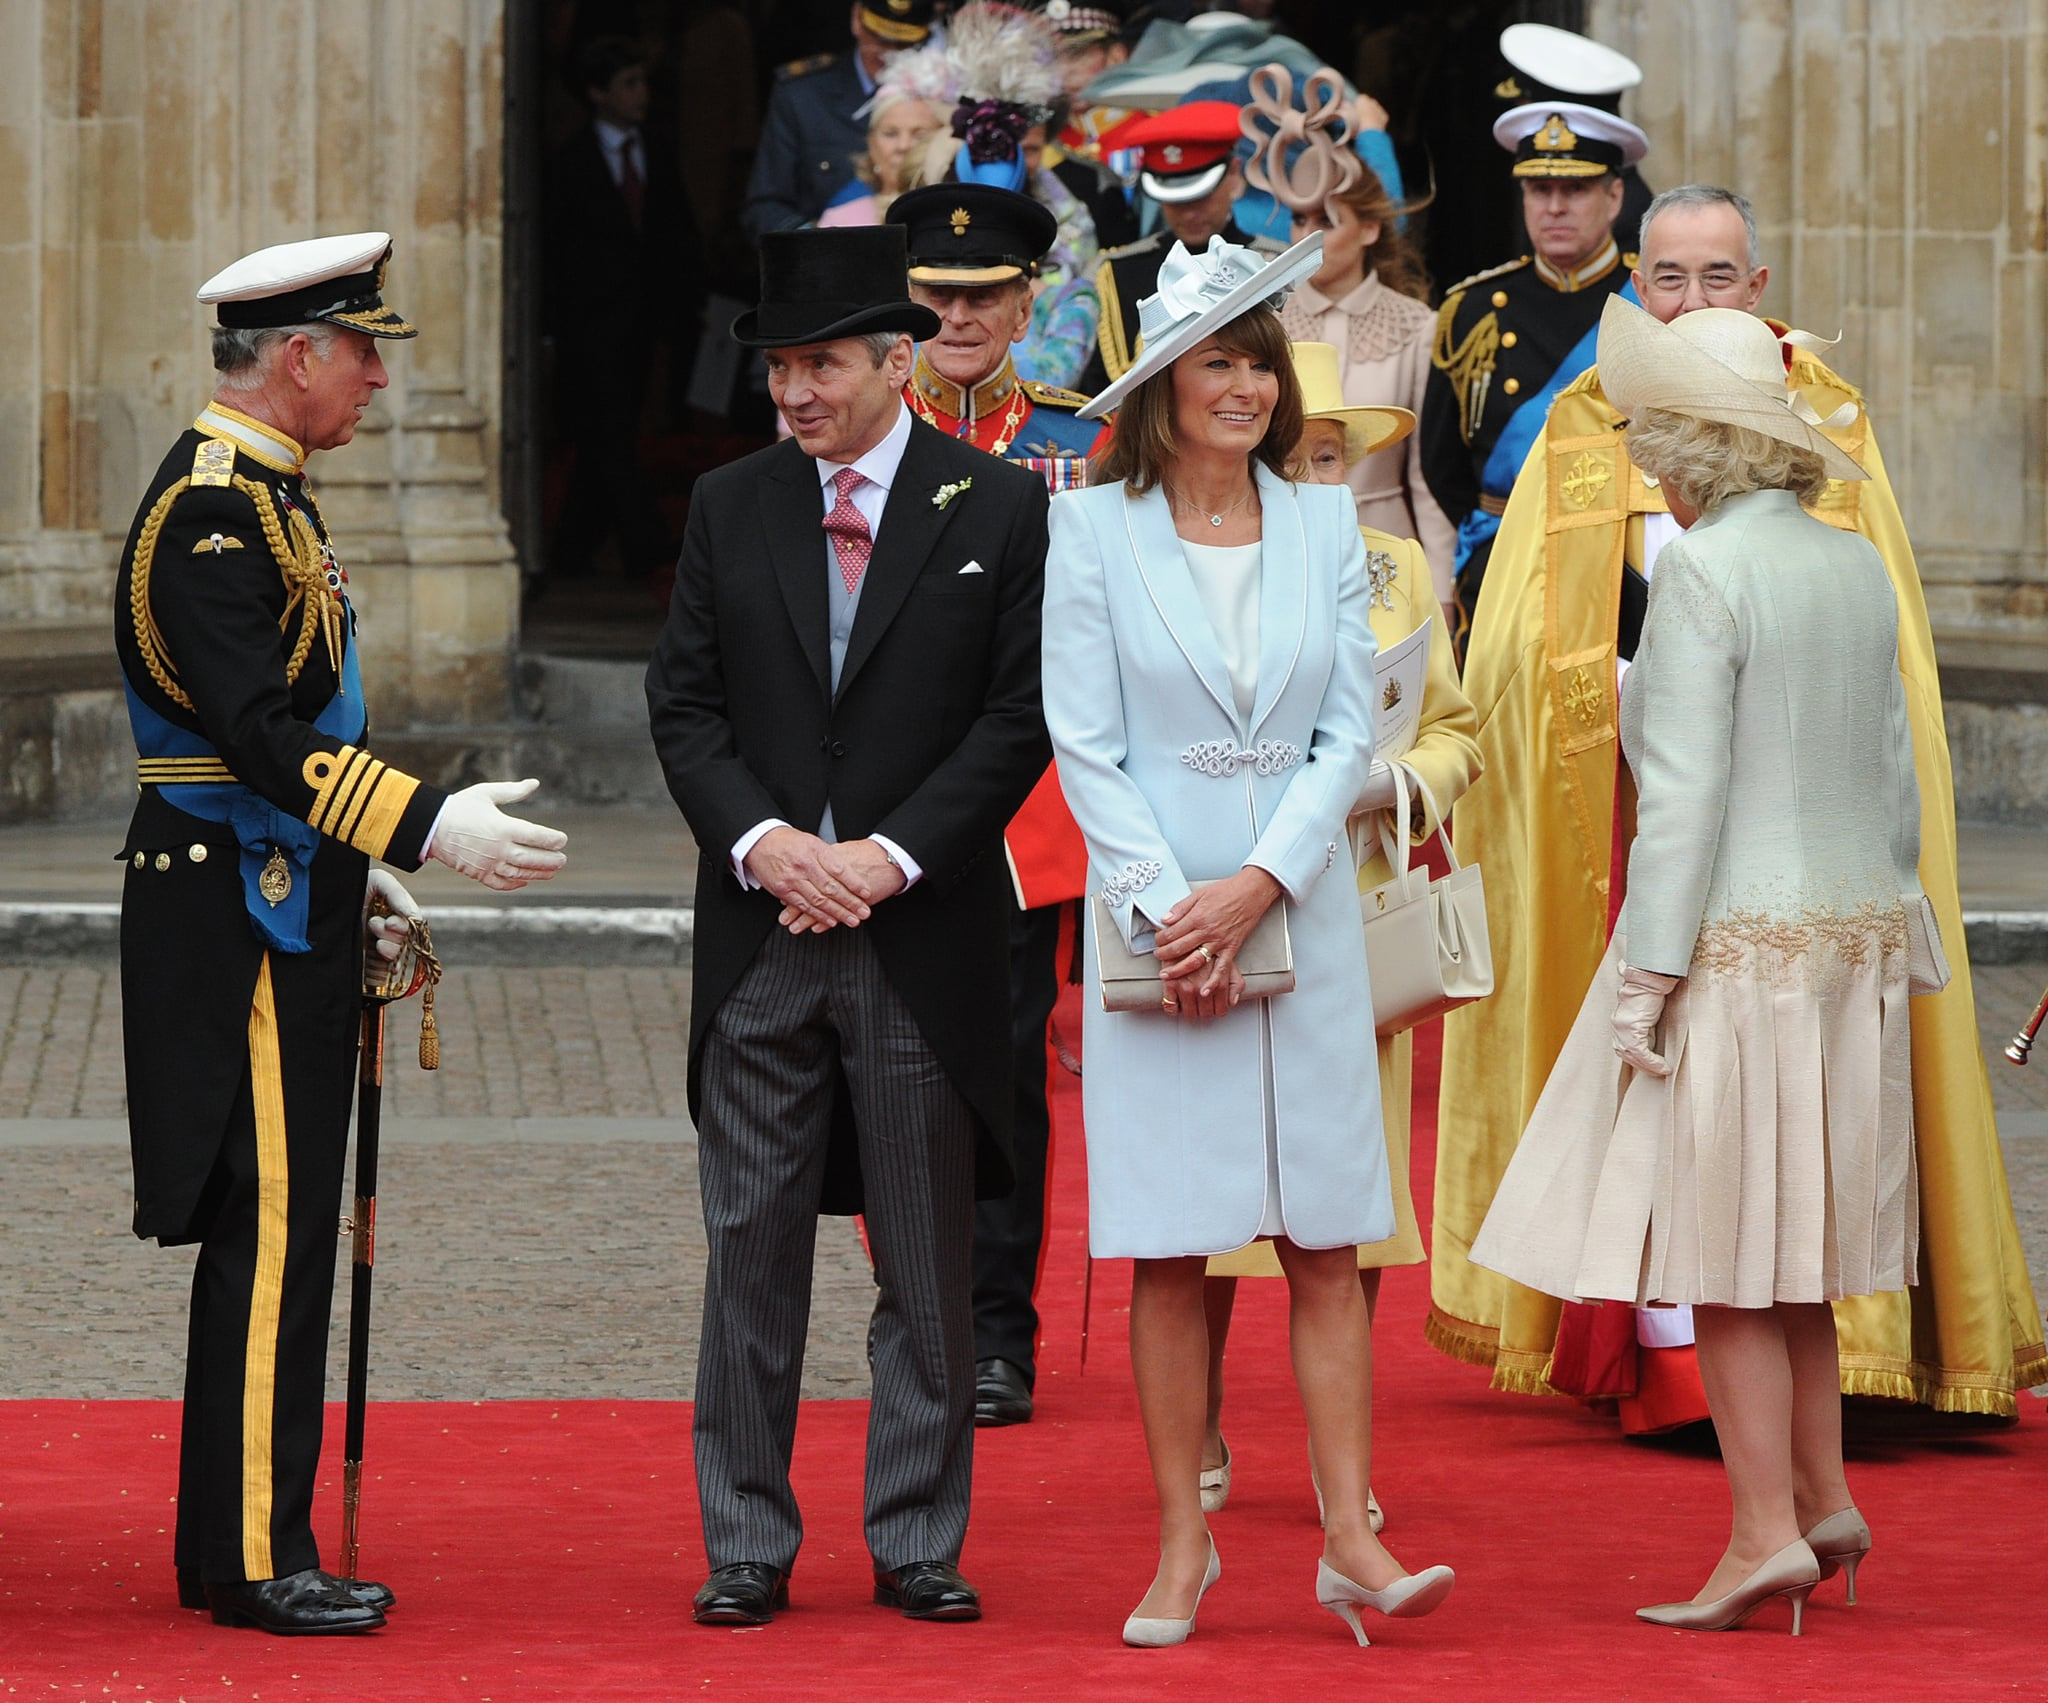 (From L to R) Britain's Prince Charles, Michael Middleton, Carole Middleton and Camilla, Duchess of Cornwall come out of Westminster Abbey in London, following the wedding ceremony of Prince William and Kate, Duchess of Cambridge, on April 29, 2011.  AFP PHOTO / CARL DE SOUZA (Photo credit should read CARL DE SOUZA/AFP/Getty Images)